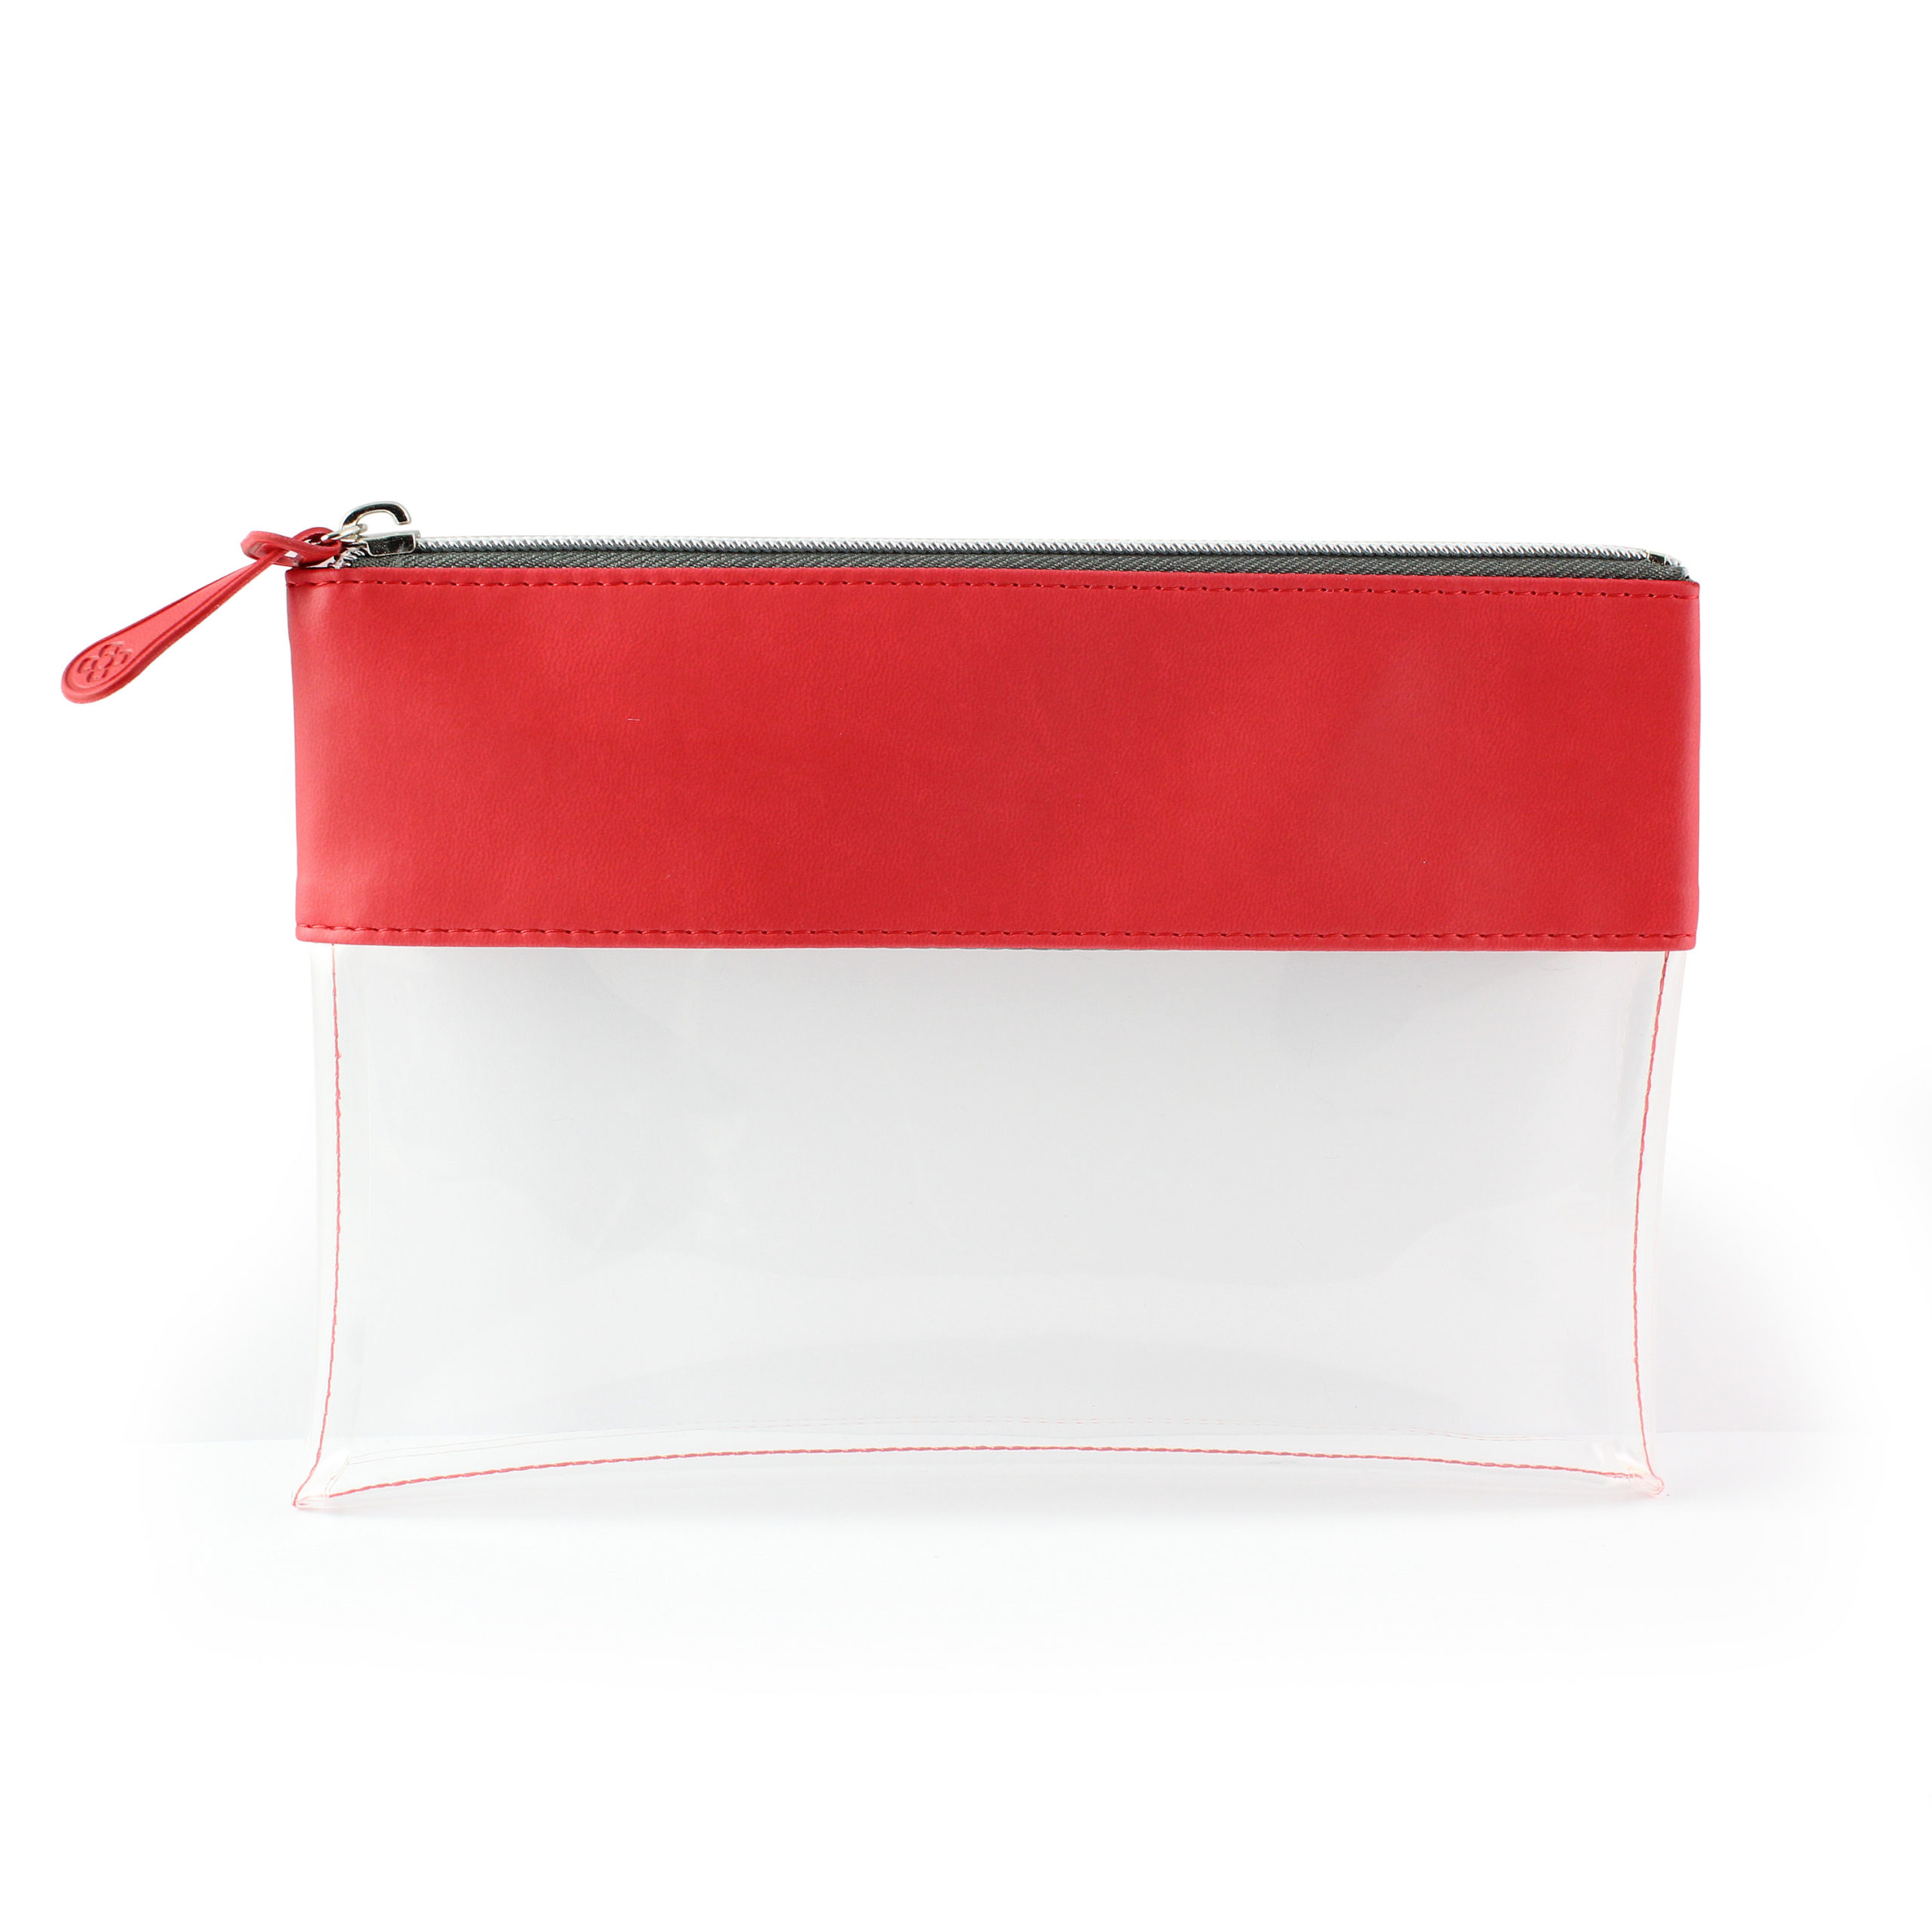 Tomato Red Clear Pouch ideal as a travel pouch or pencil case.